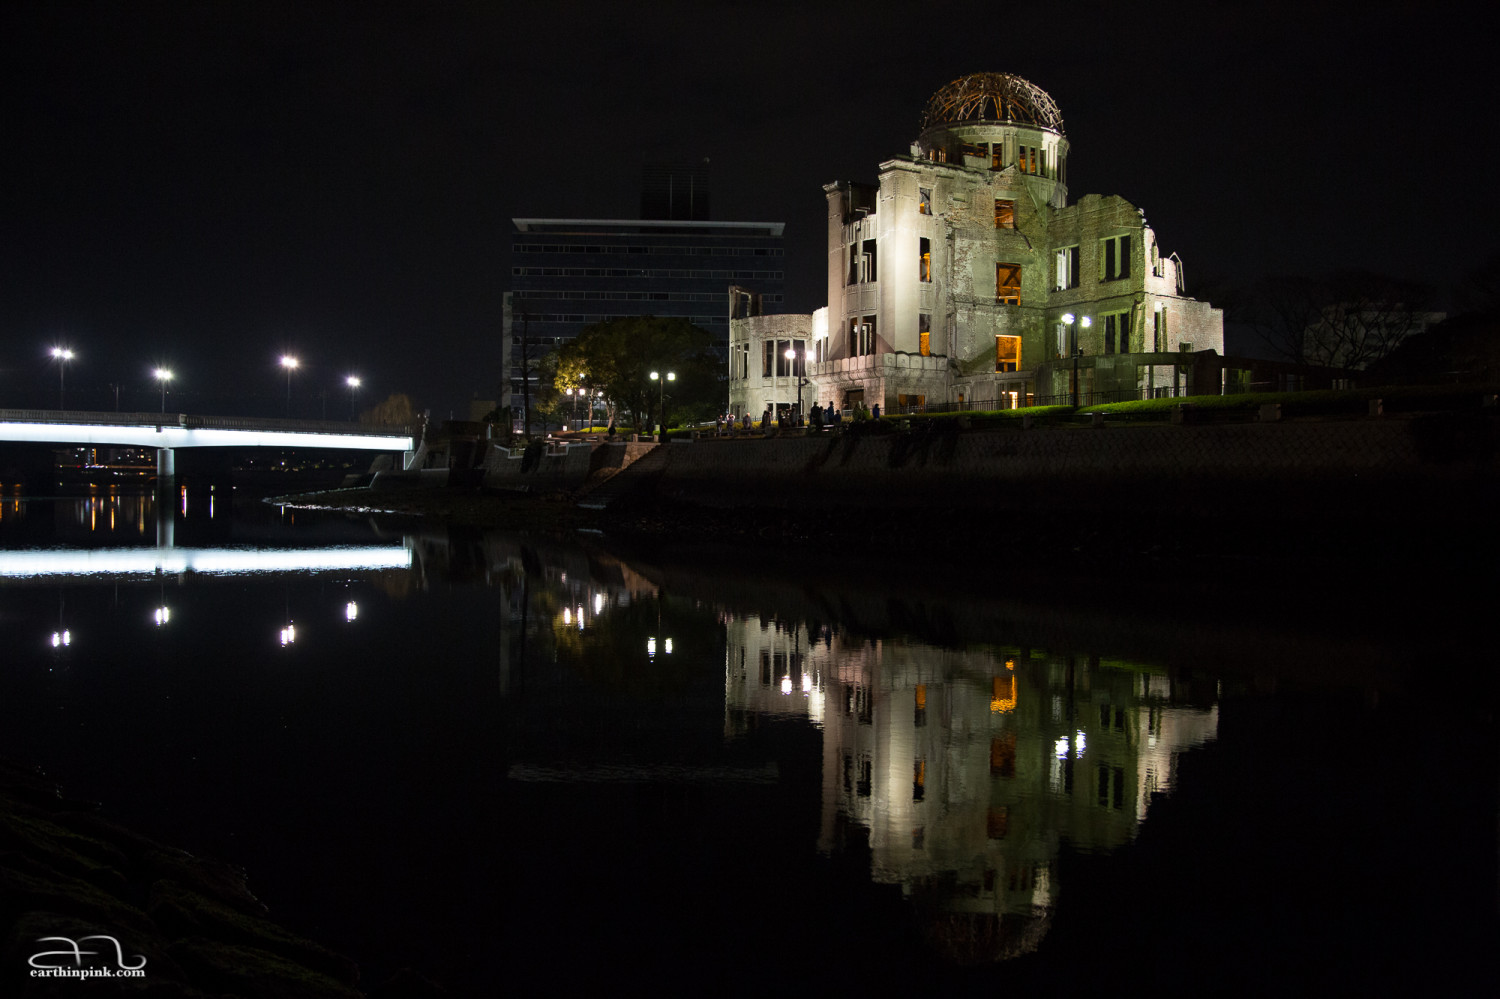 A night photo of the Atomic Bomb Dome at the Hiroshima Peace Memorial Park - the single most powerful symbol of a history lesson that must never be forgotten.